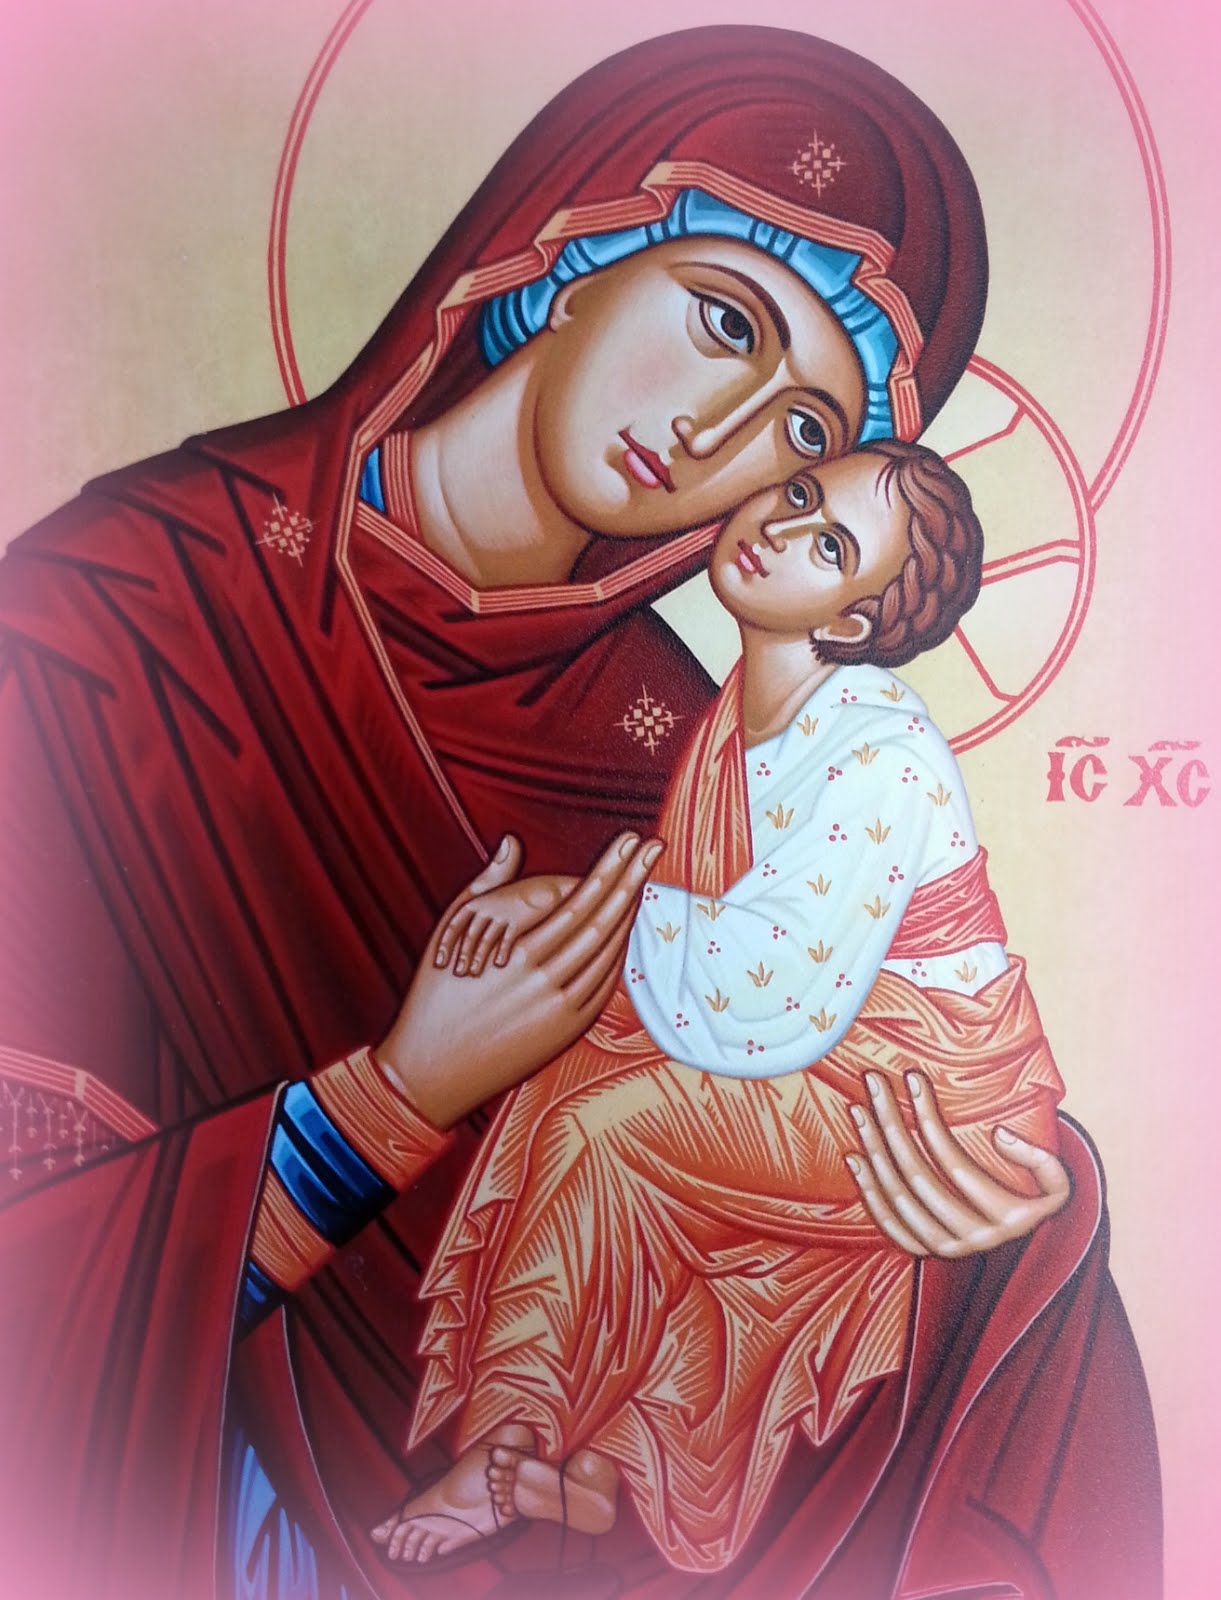 Striving to be a wife and mommy like Our Lady